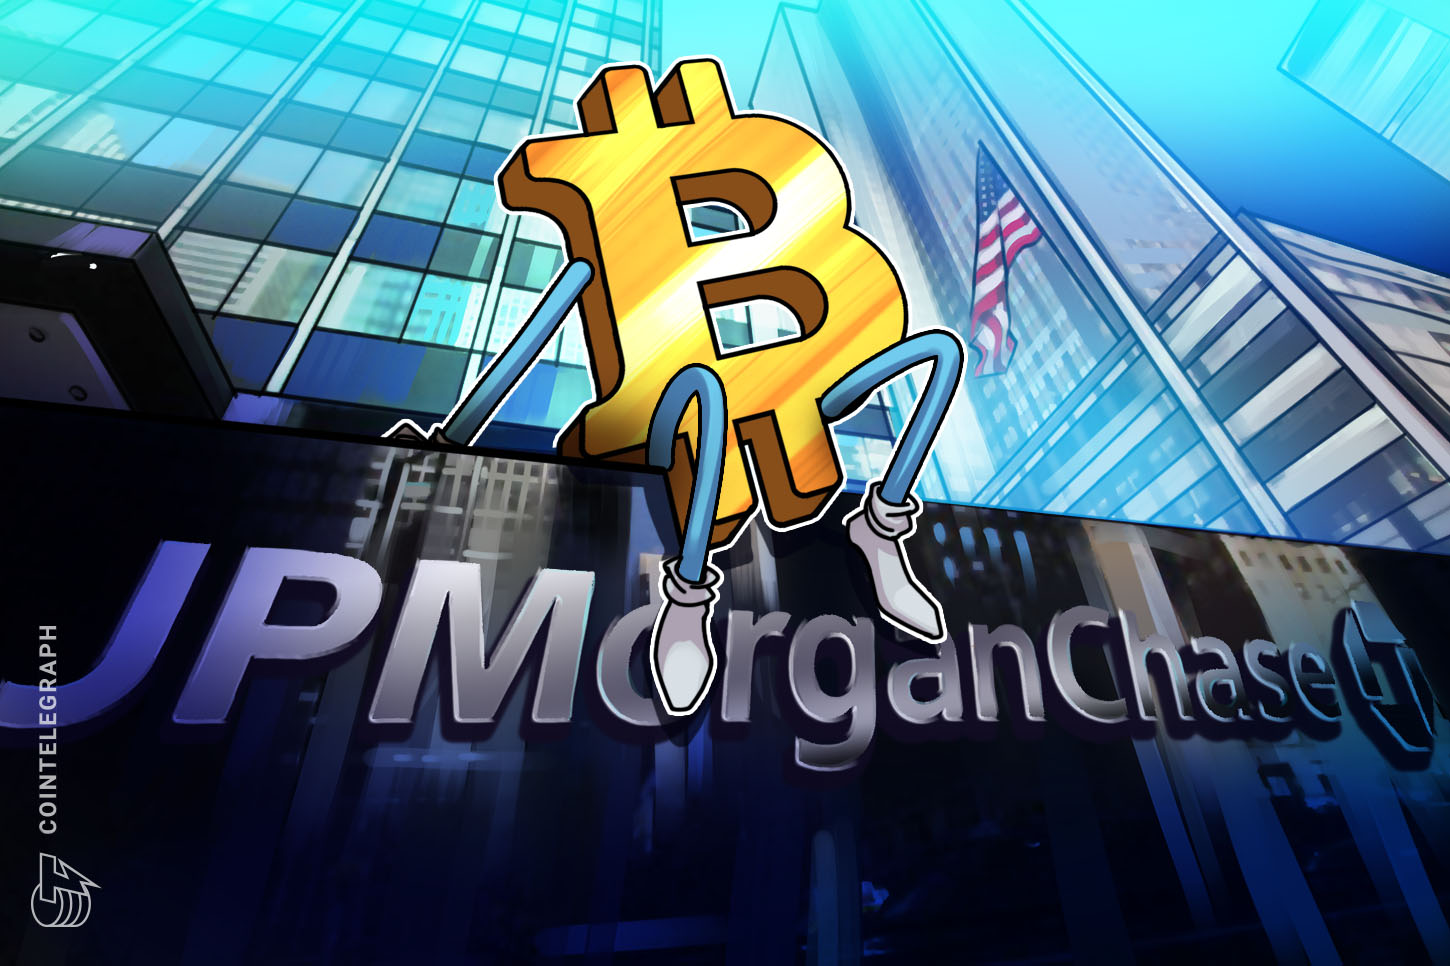 JPMorgan CEO says Bitcoin price could rise 10X, but still won't buy it